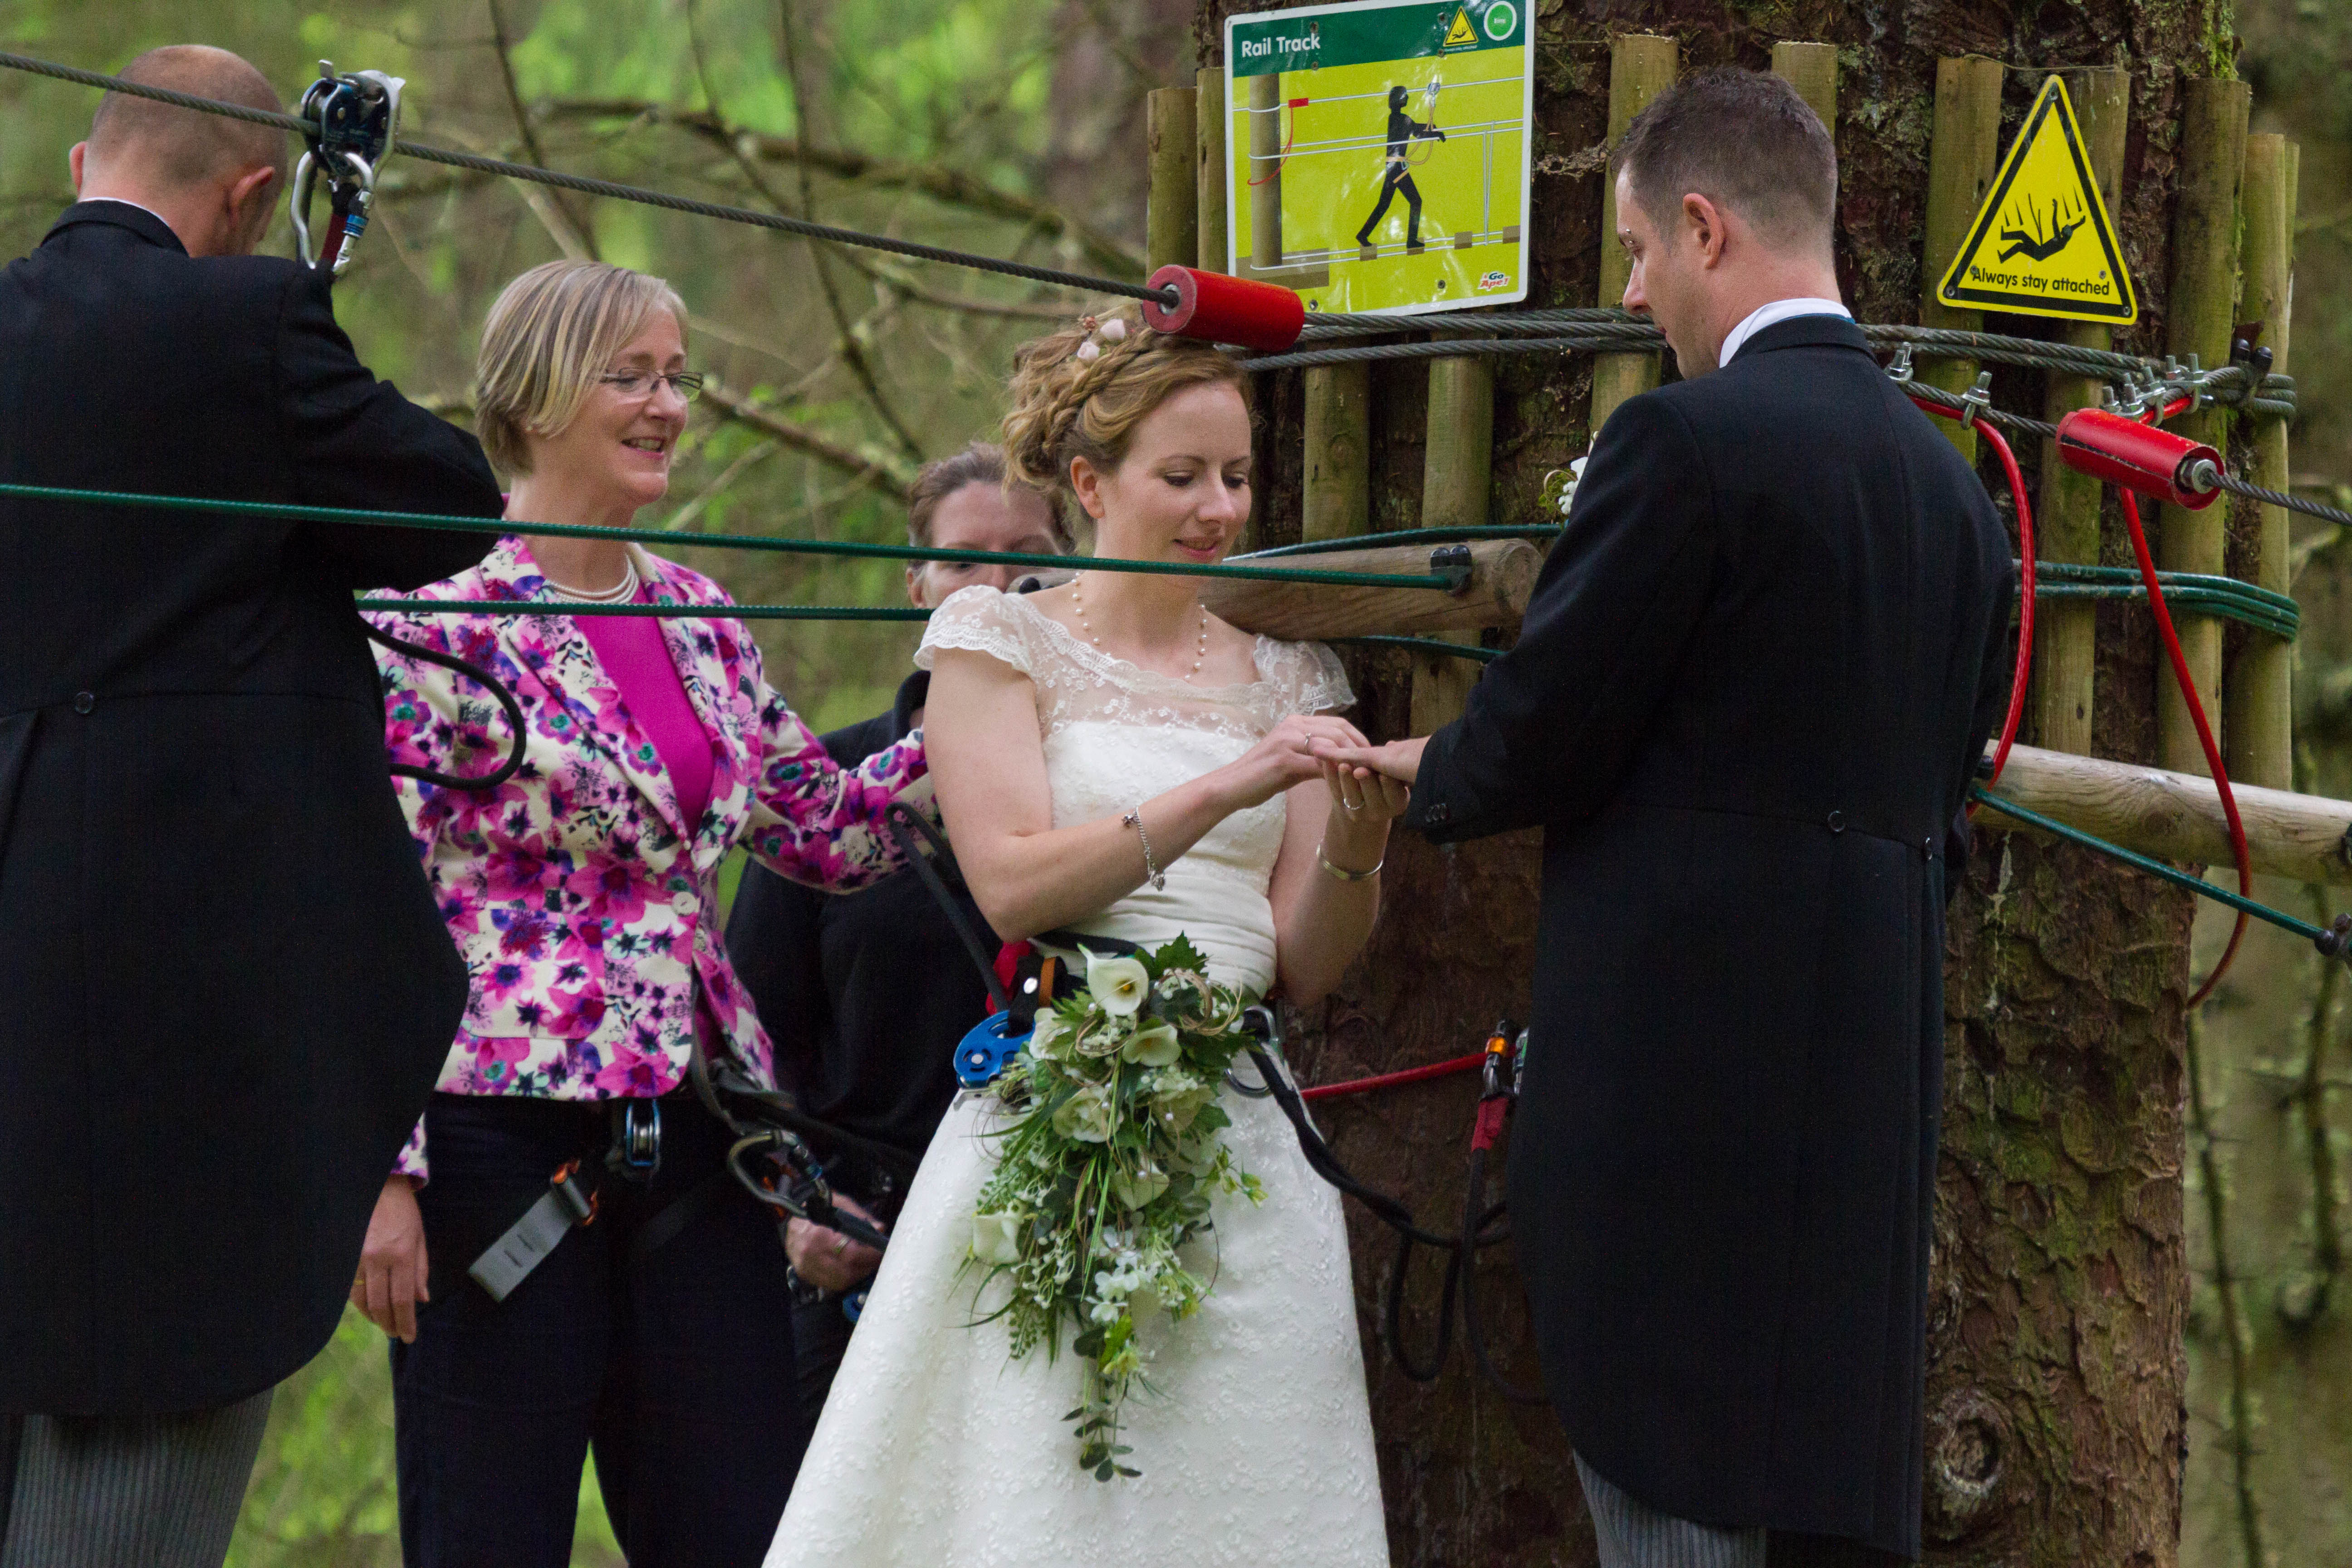 Media Release: Love is in the air with first treetop wedding at Go Ape